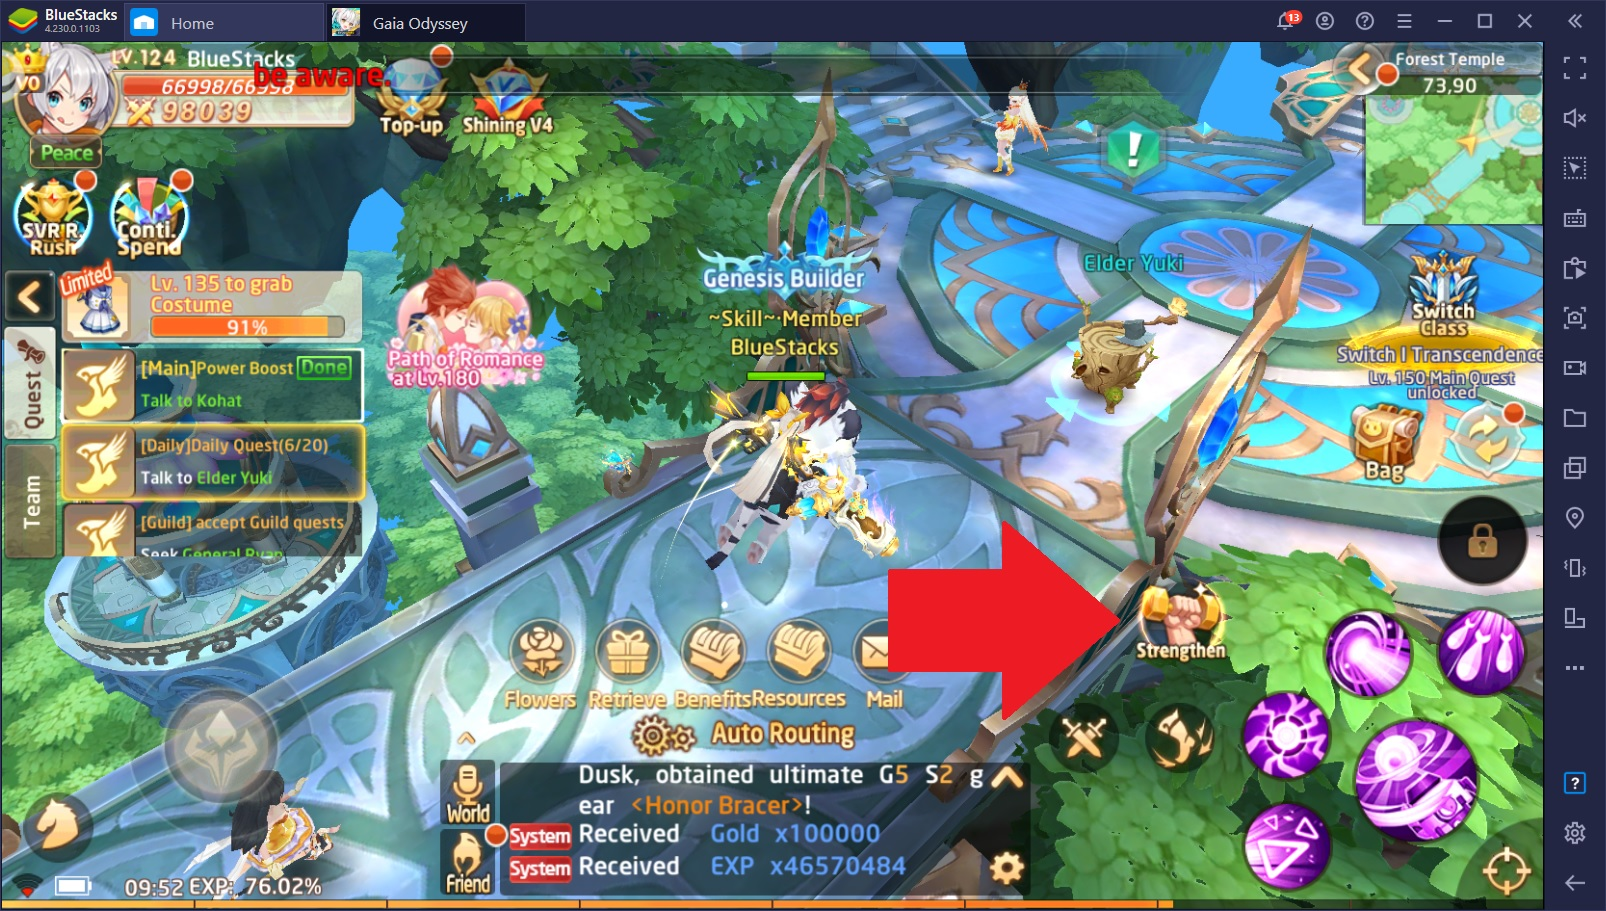 Beginner's Guide for Gaia Odyssey – The Best Starter Tips, Tricks, and Strategies